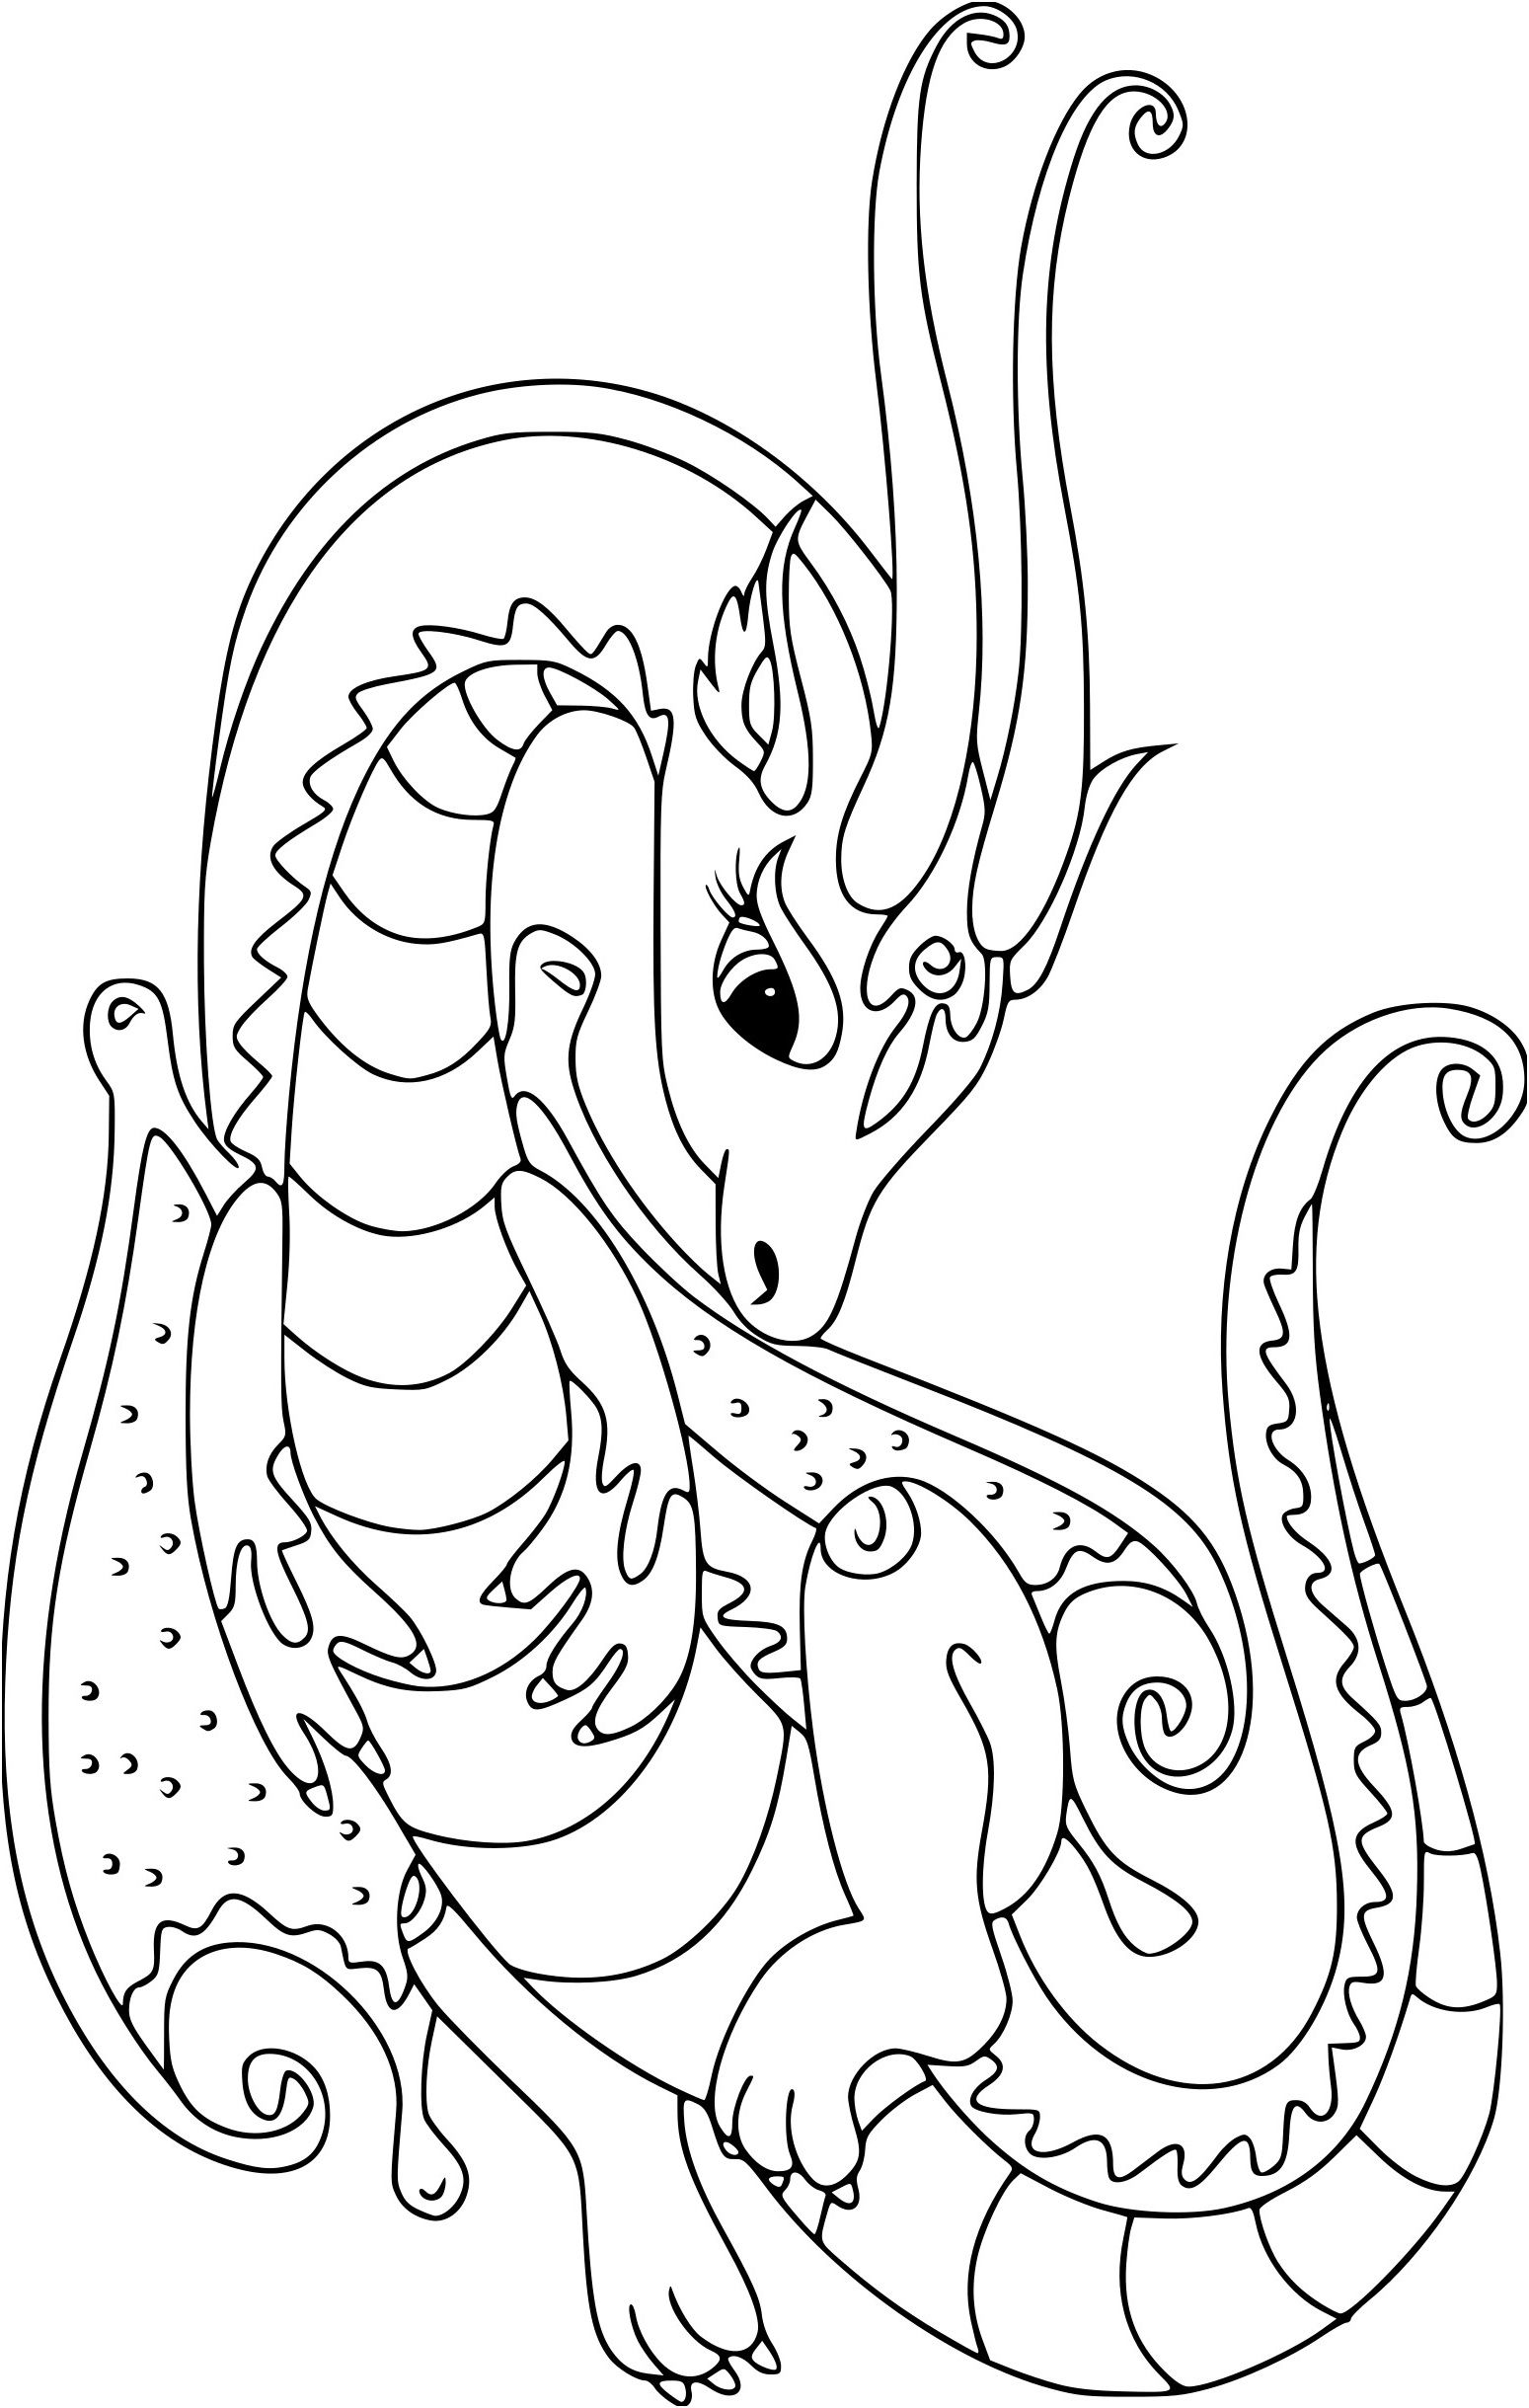 Pin By Candaceschwitz On Tattoo Drawings Dragon Coloring Page